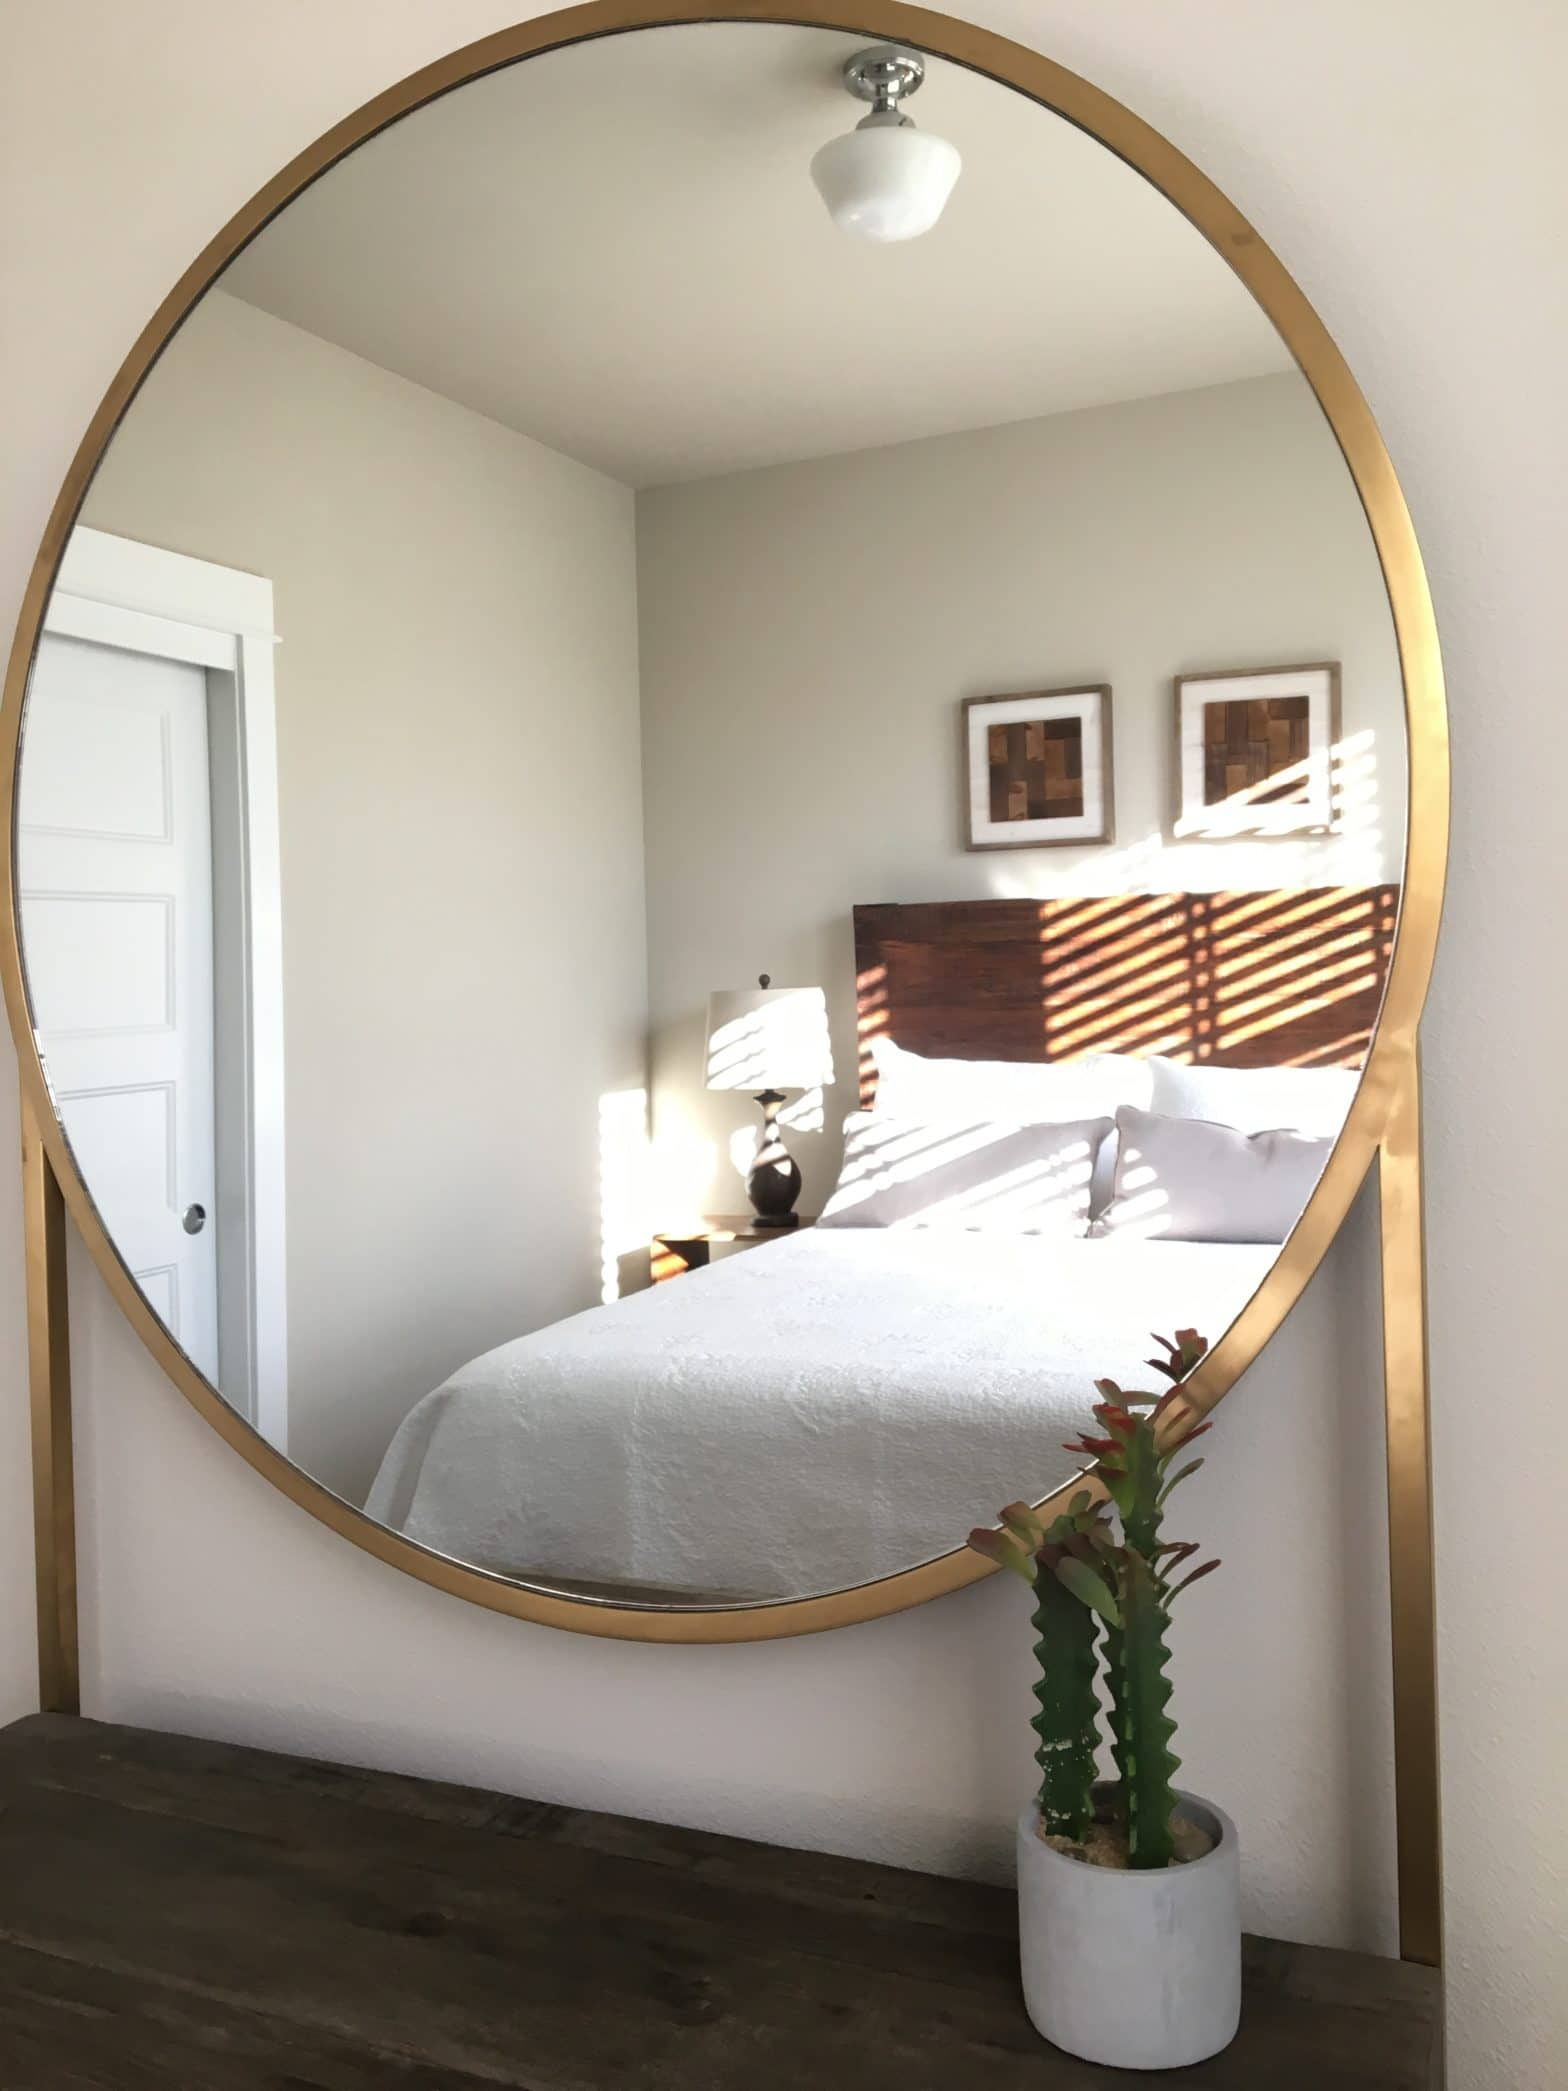 Round Mirror showing reflection of bed in vacation rental home